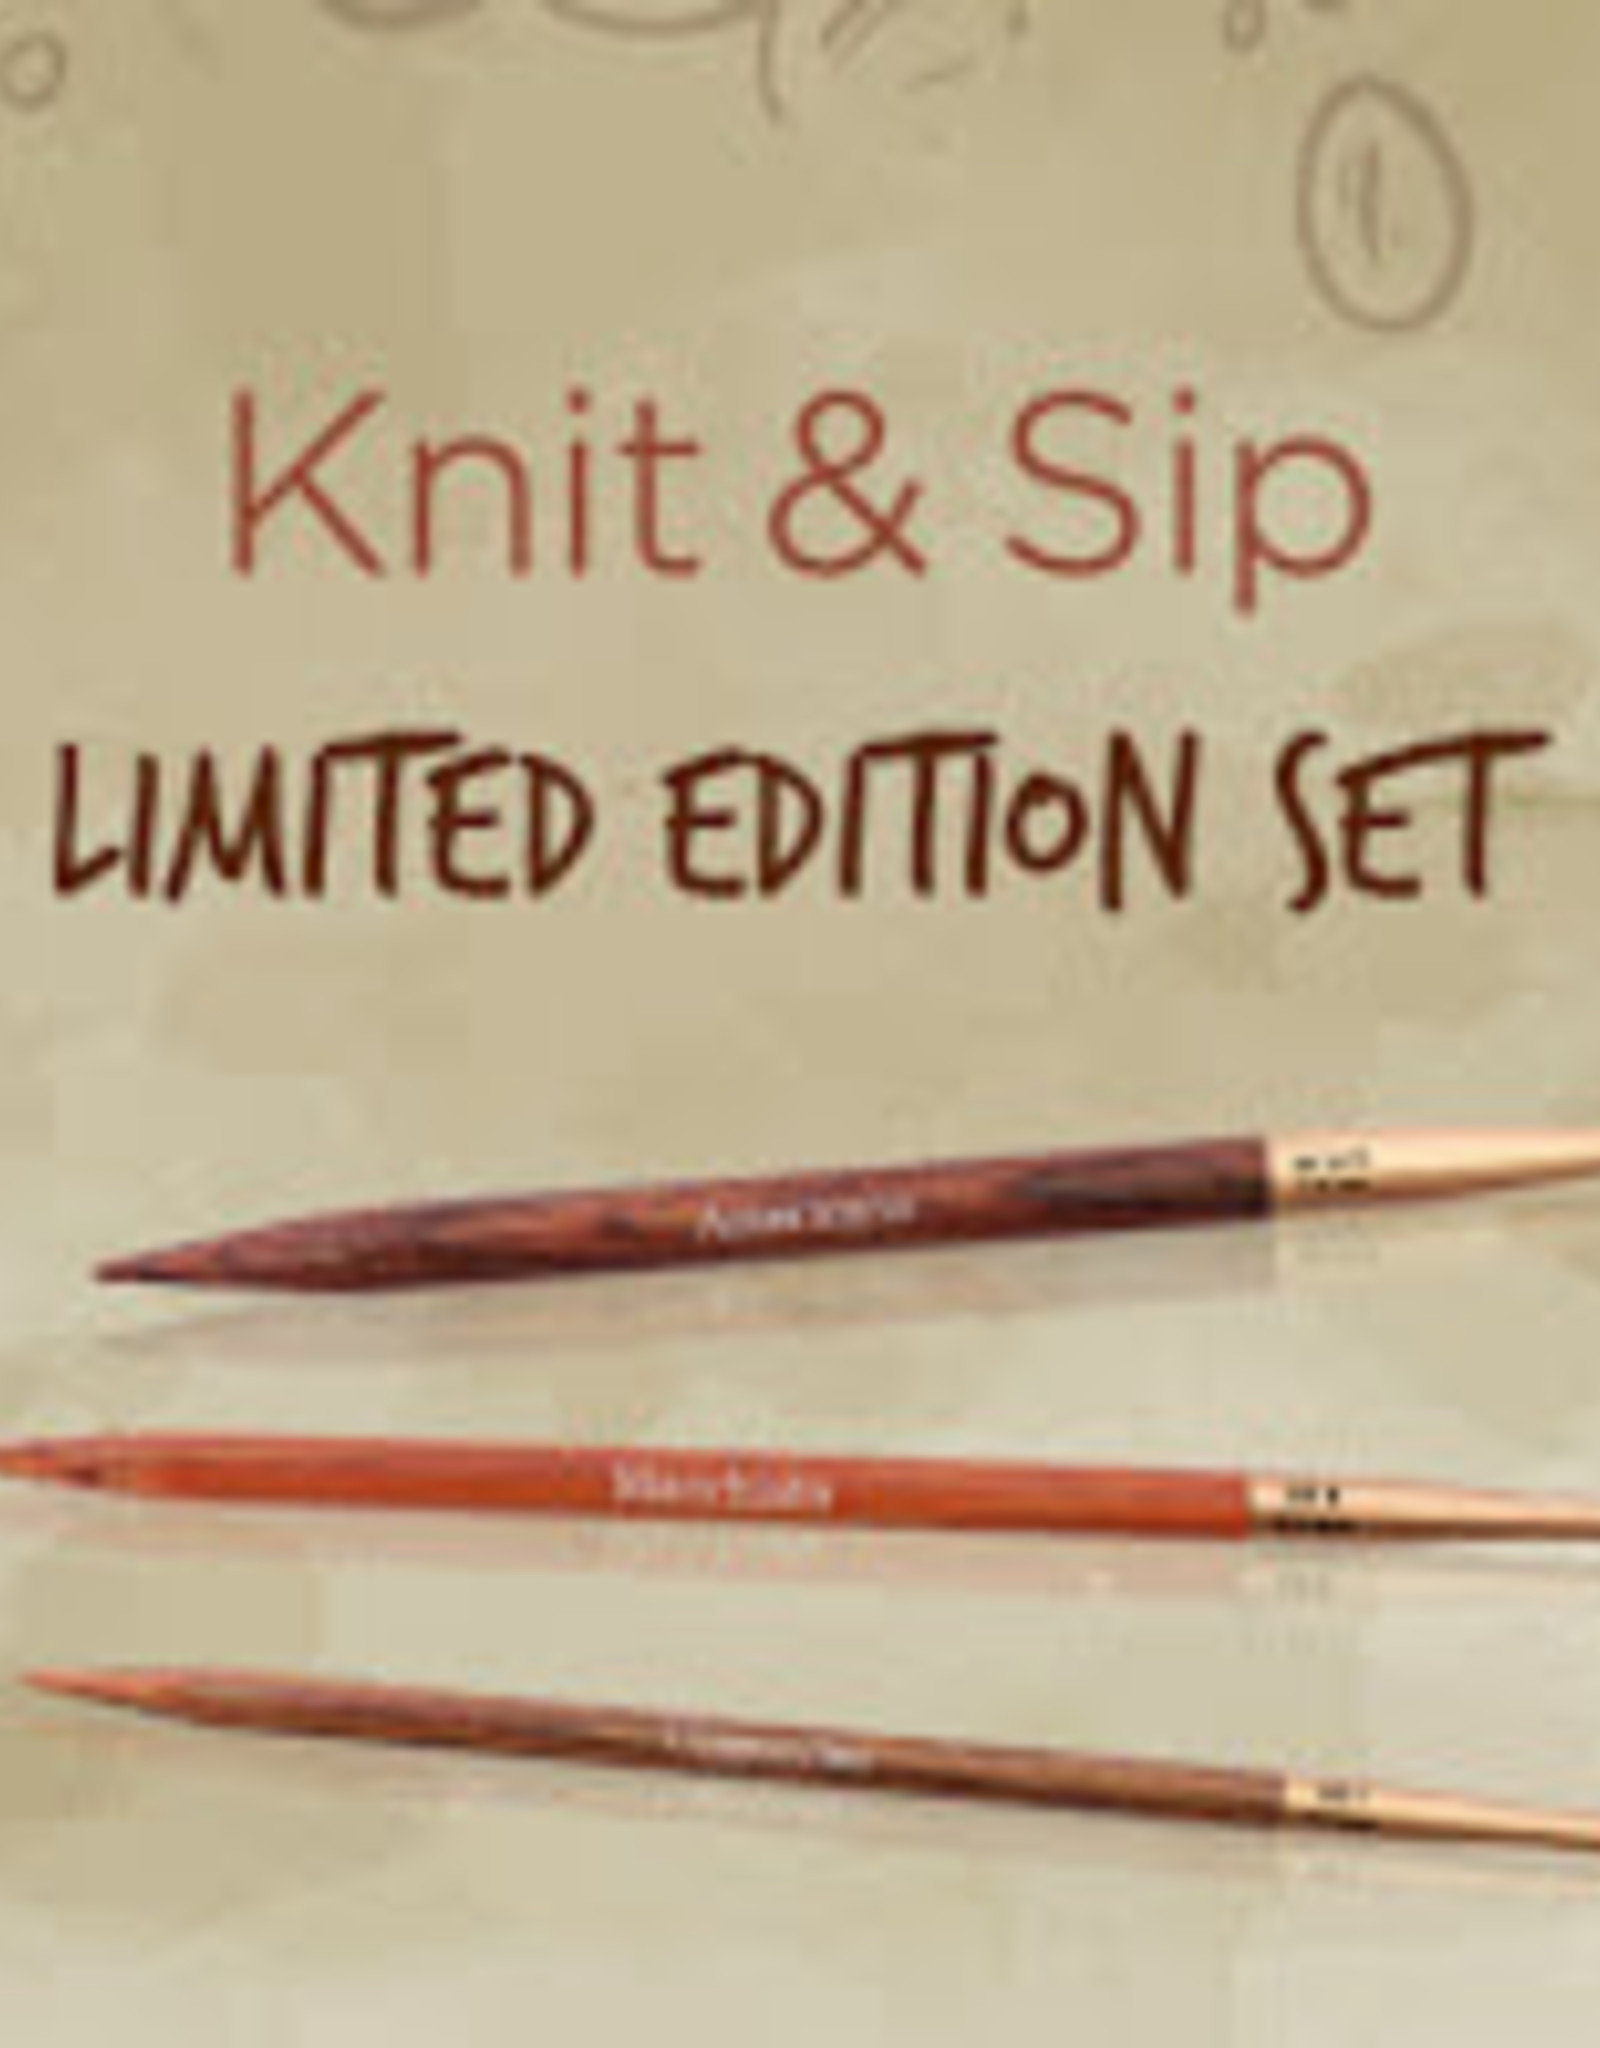 Knitter's Pride Knit & Sip IC Set from Knitter's Pride